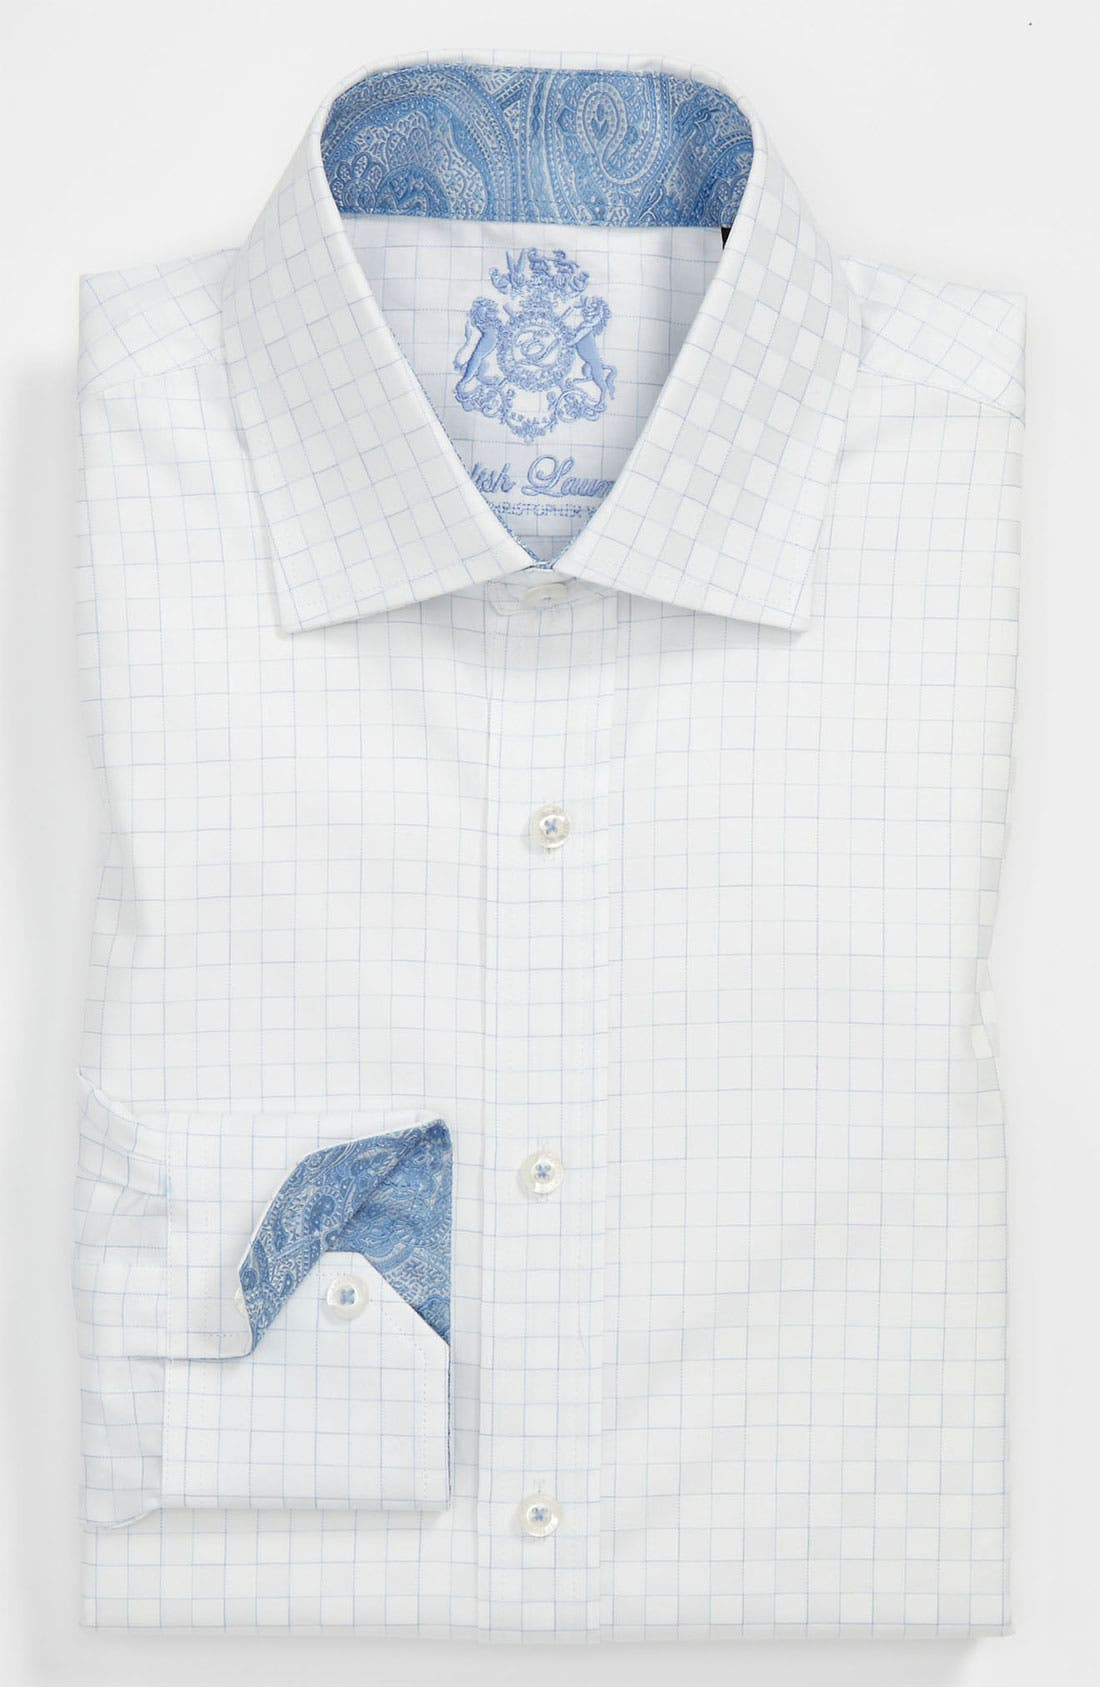 Main Image - English Laundry Trim Fit Dress Shirt